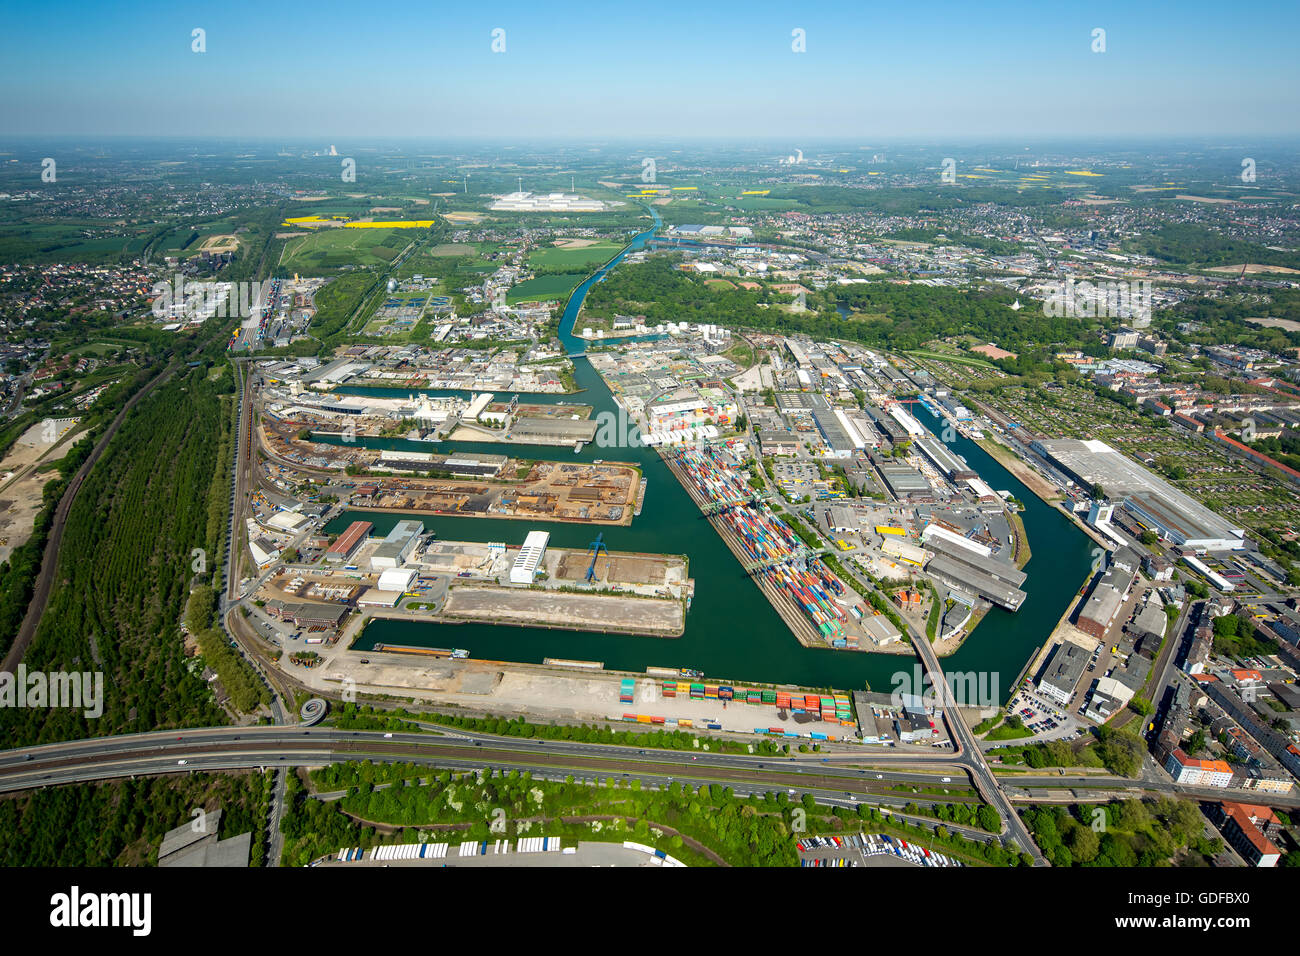 Aerial view, port of Dortmund, inland port, Dortmund-Ems Canal, container port, the Port of Dortmund AG, Dortmund, - Stock Image